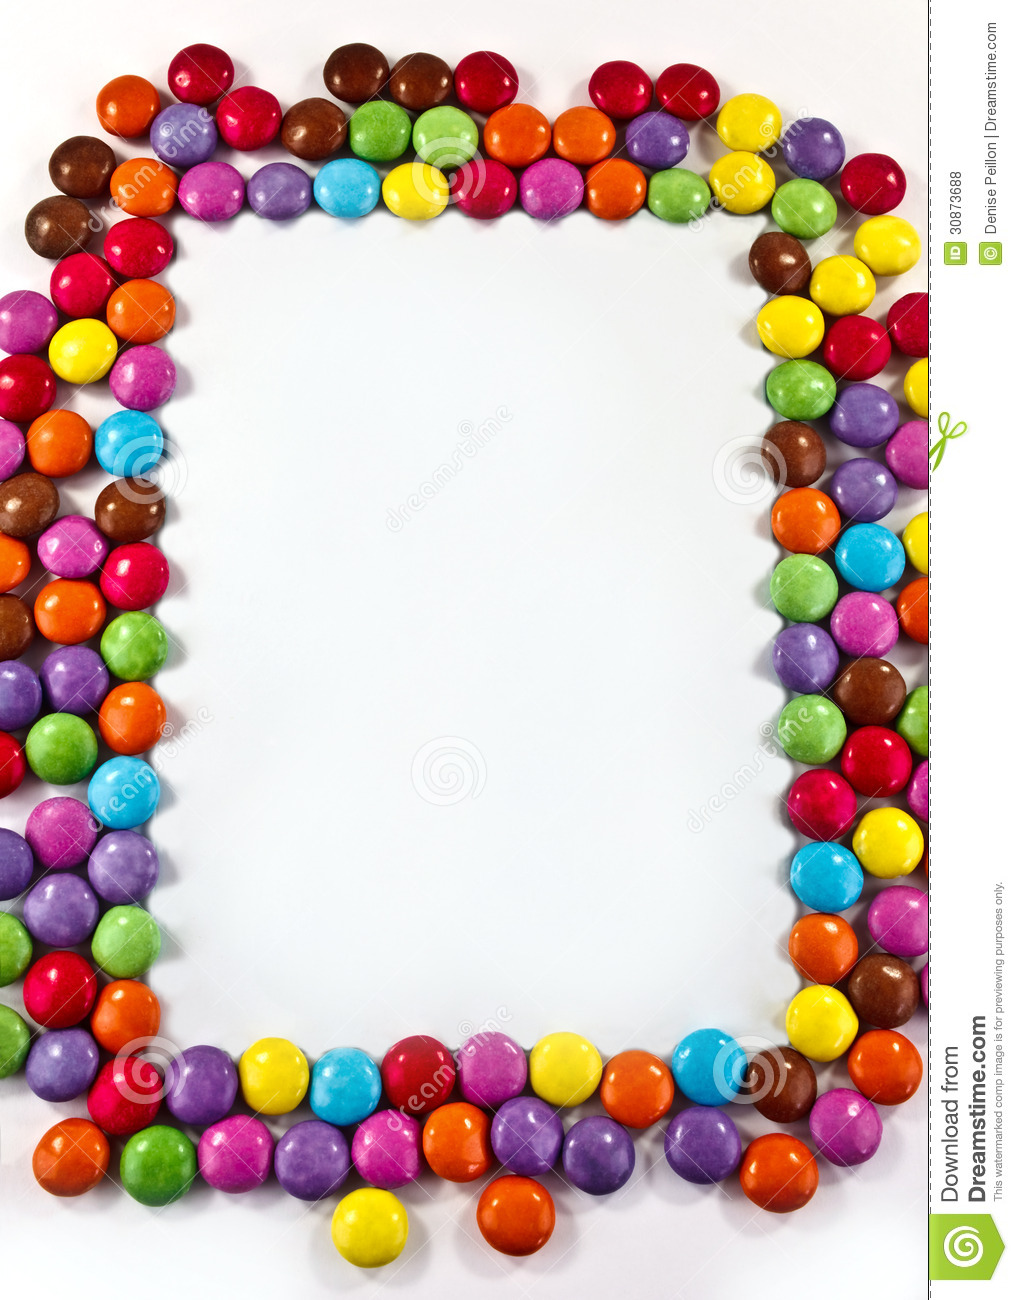 frame of colorful sugar coated chocolate smarties with space for ...